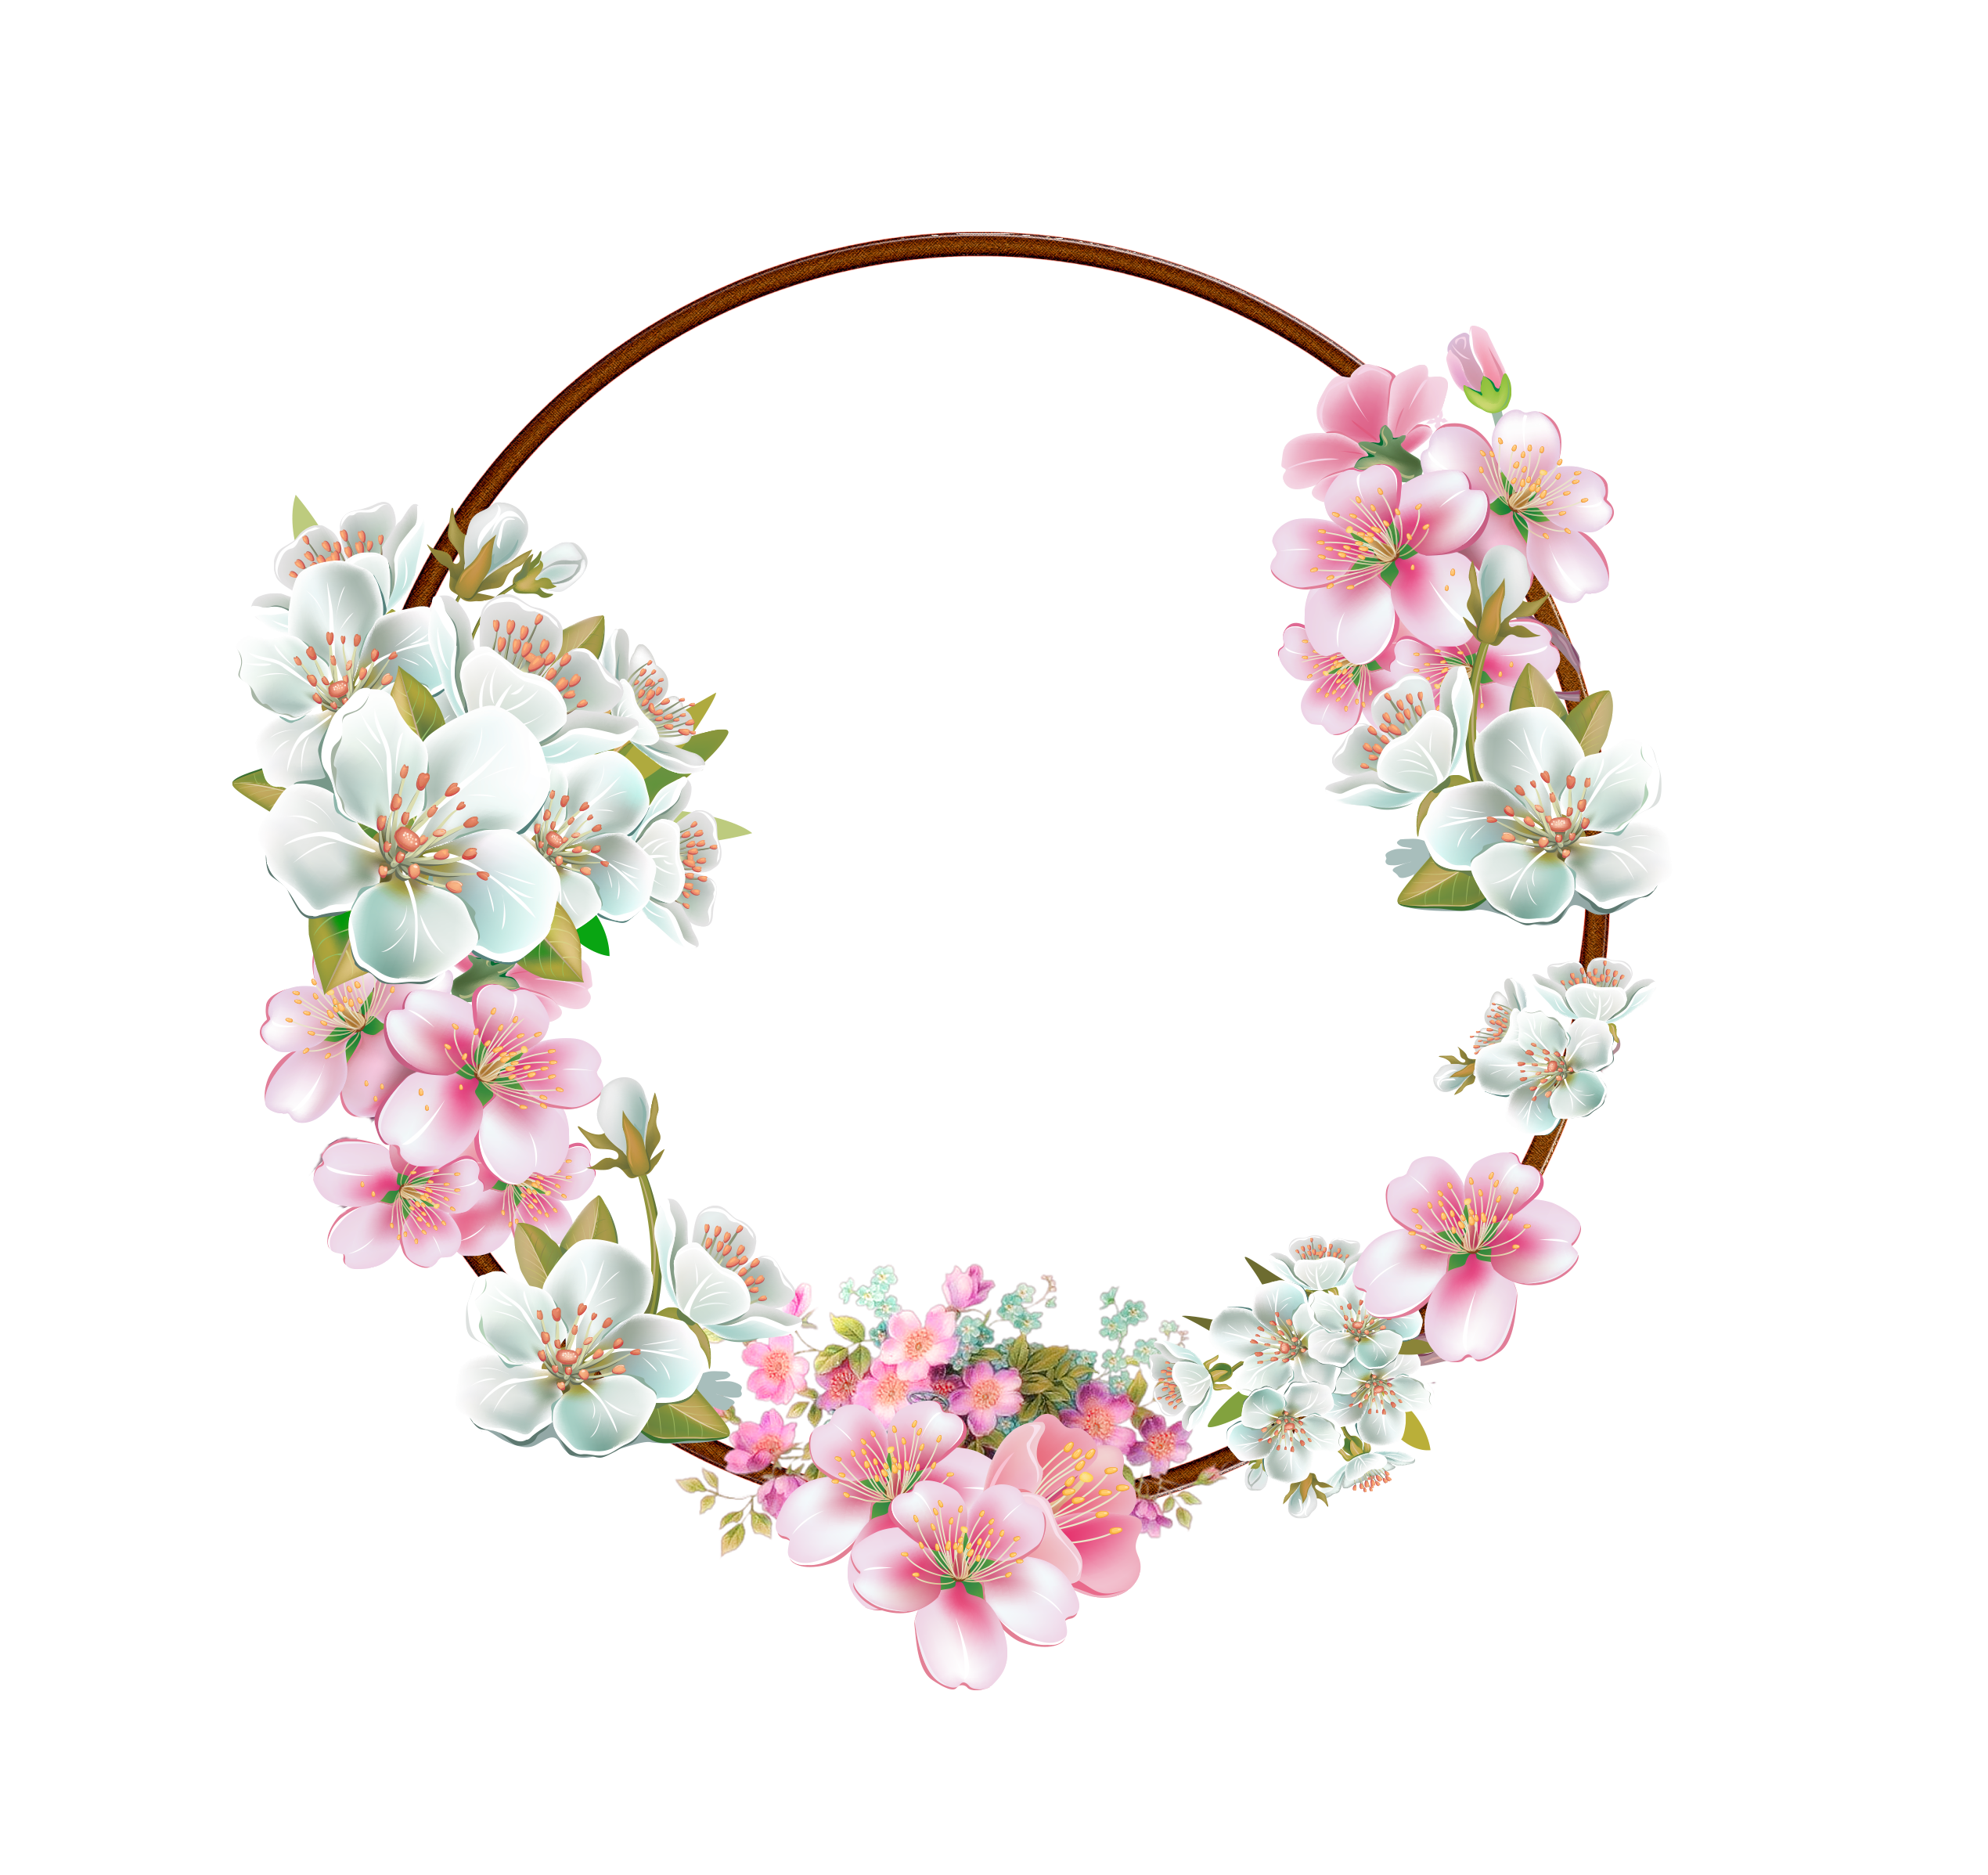 Flower frame by mysticmorning. Cherry blossom border png picture royalty free stock